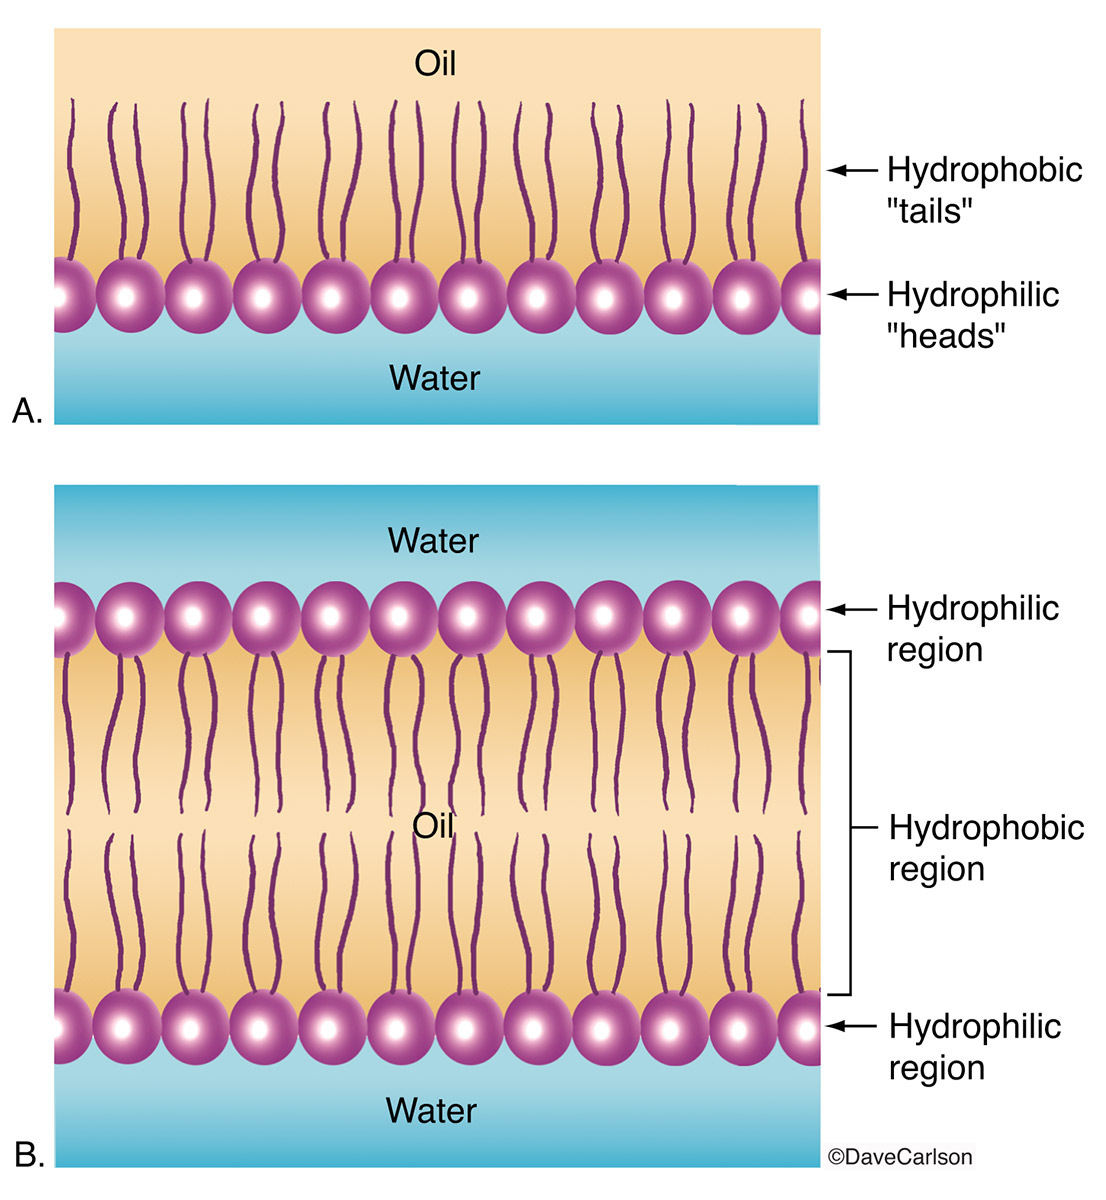 phospholipid, lipid bilayer surrounds all cells and forms the structure​ of the cell membrane, lipid, bilayer, cell membrane, photo